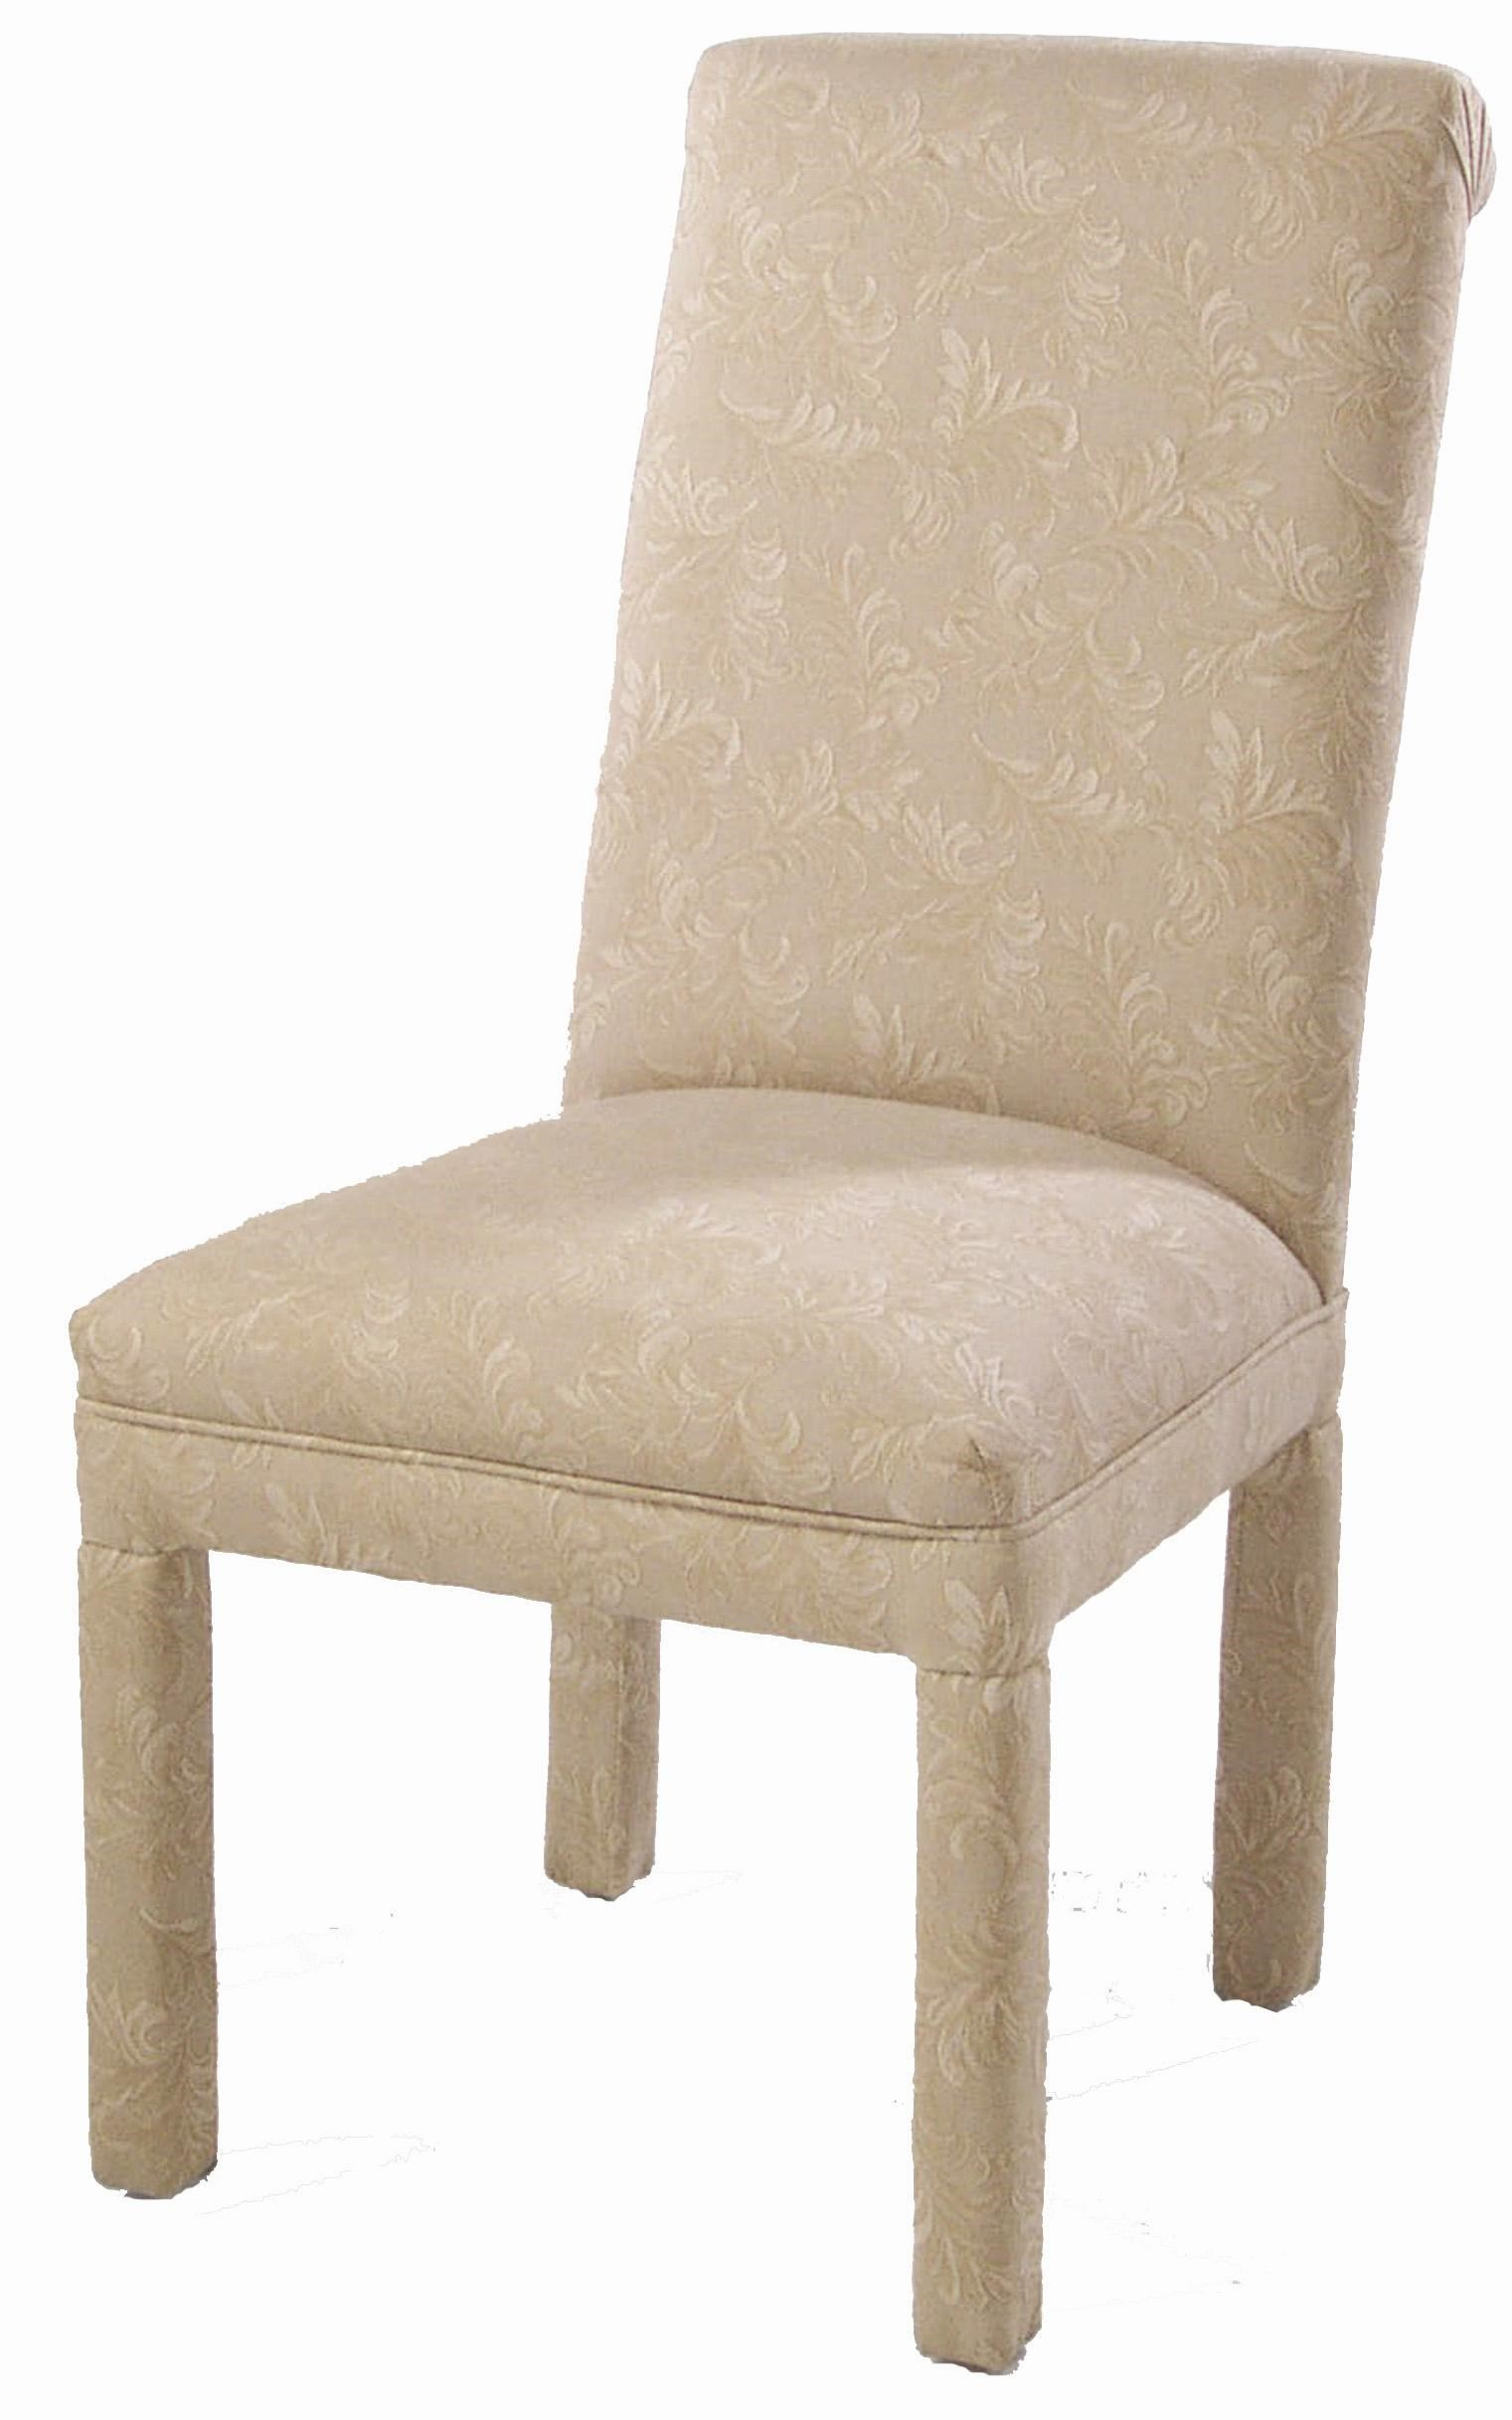 Perfect CMI Parson Chairs Upholstered Dining Chair   Hudsonu0027s Furniture   Dining  Side Chair